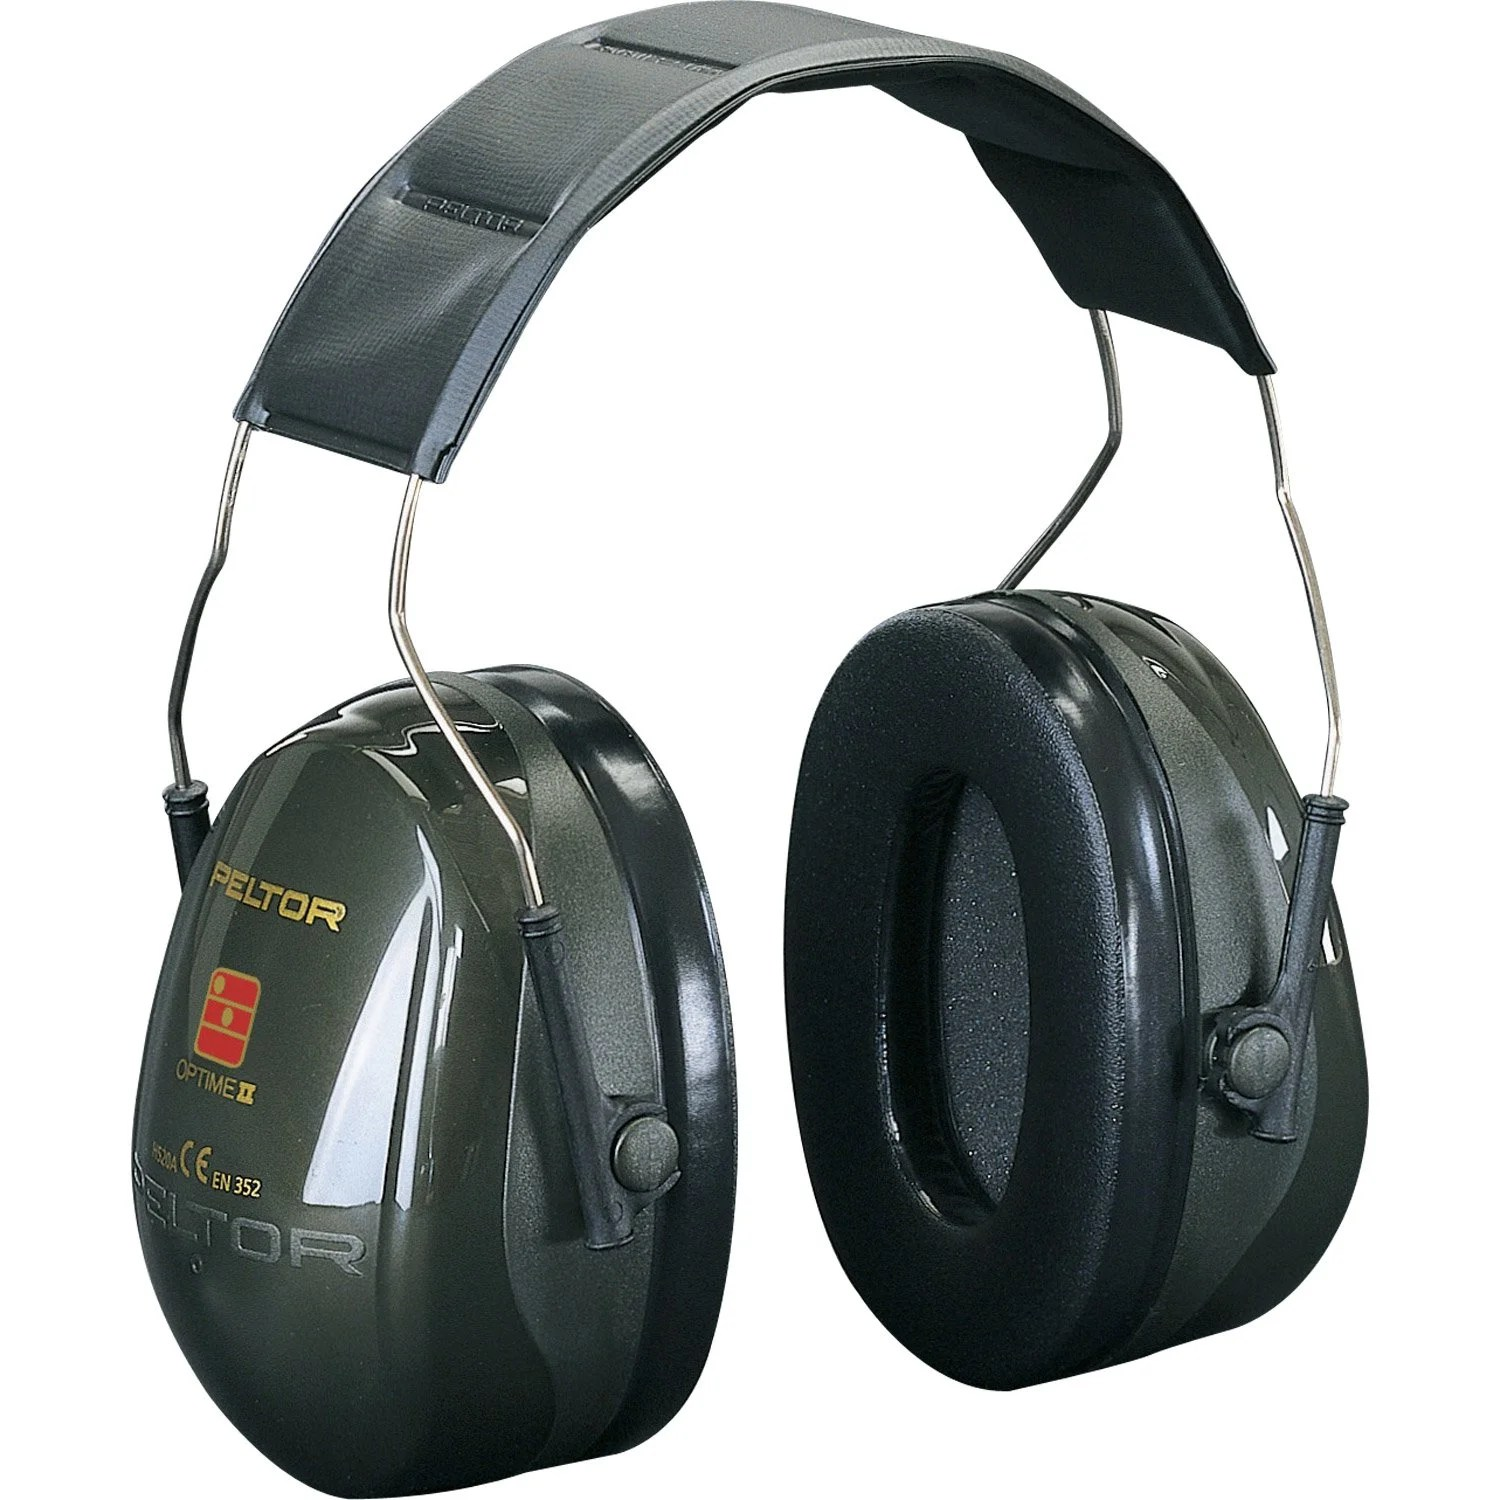 Spa Exterieur Bruit Casque Antibruit 3m Peltor Optime2 Leroy Merlin